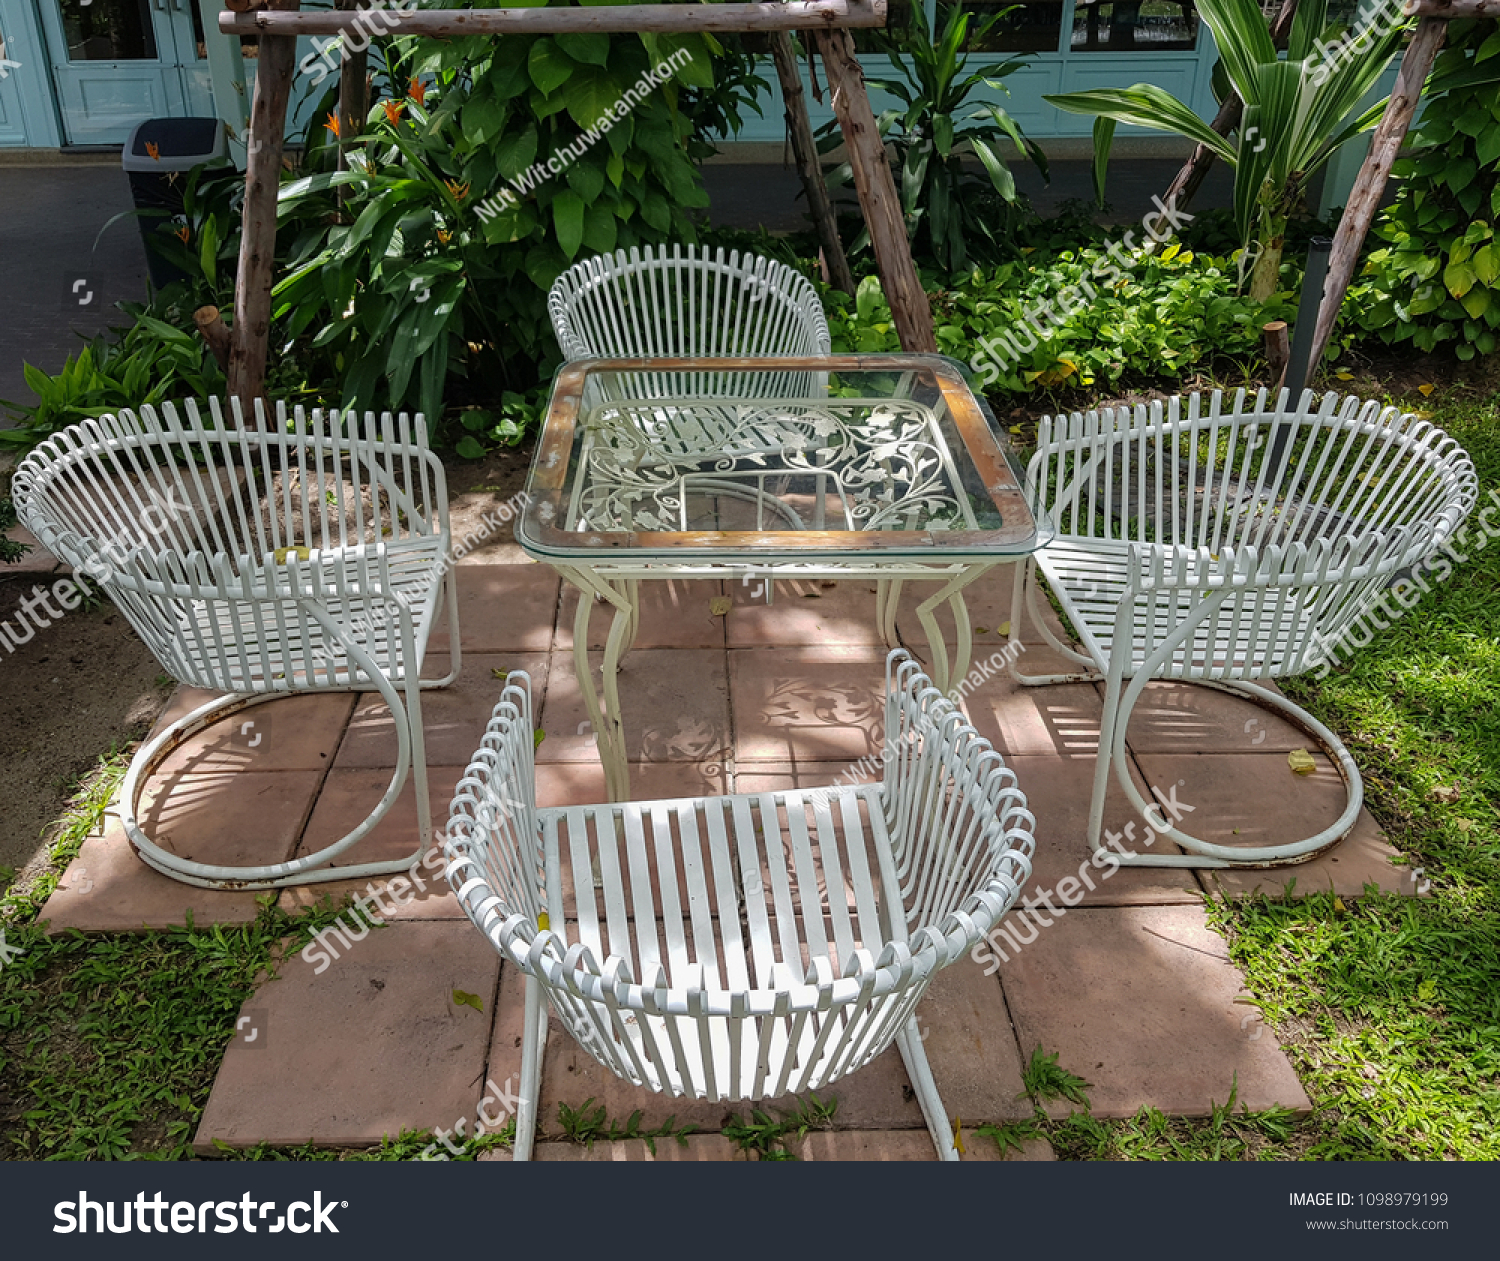 Bangkok thailand may 26 2018table and chairs in the garden to